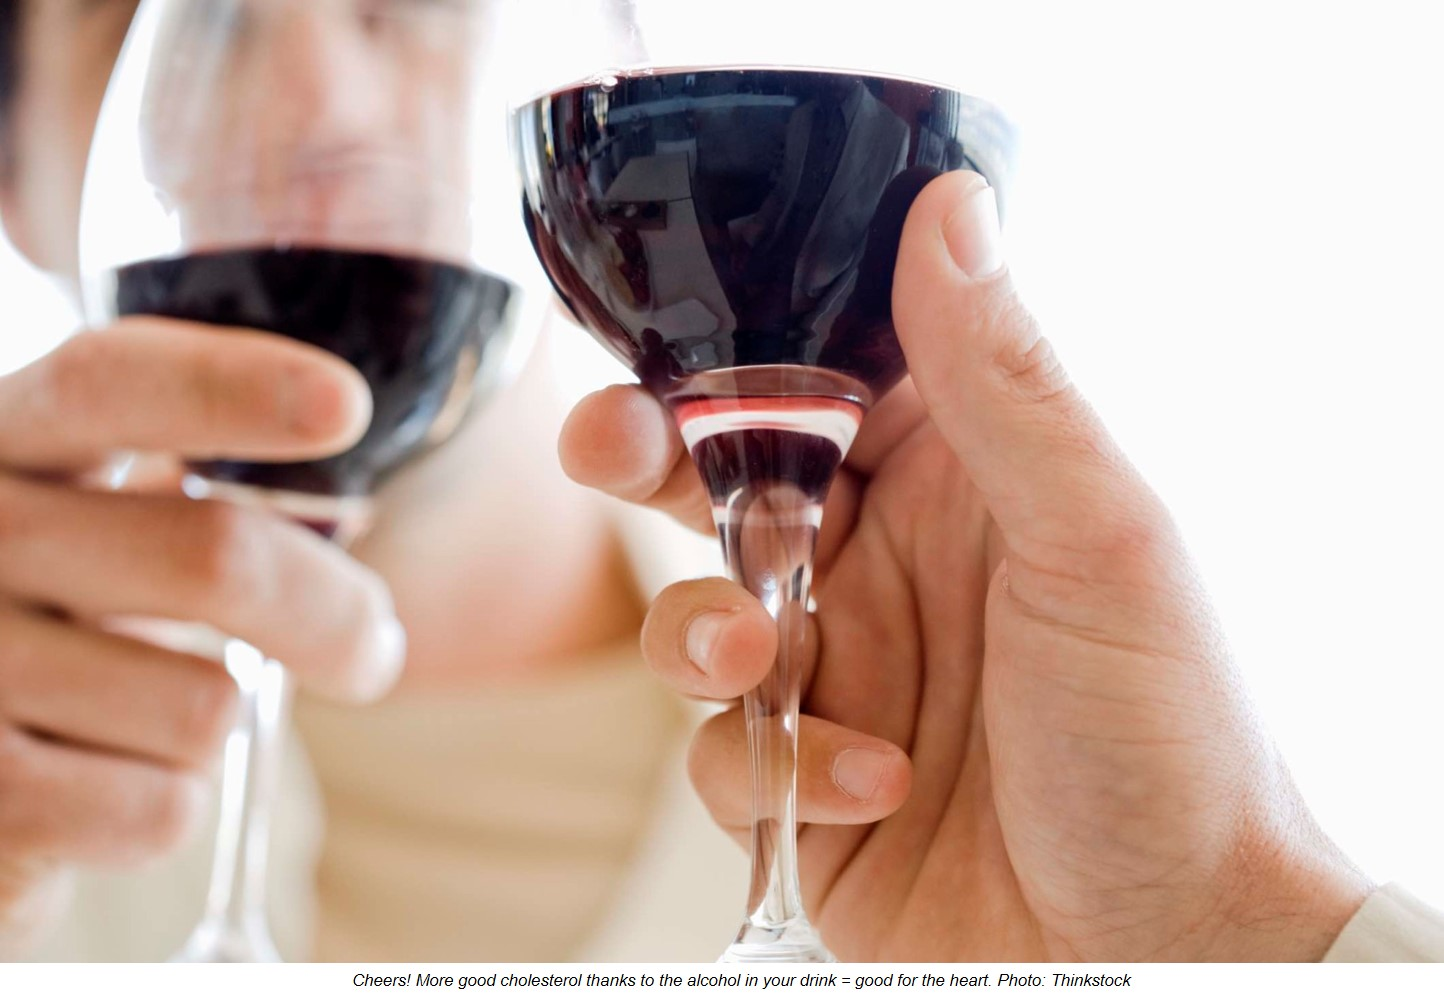 Fewer heart problems in people who drink moderately and often